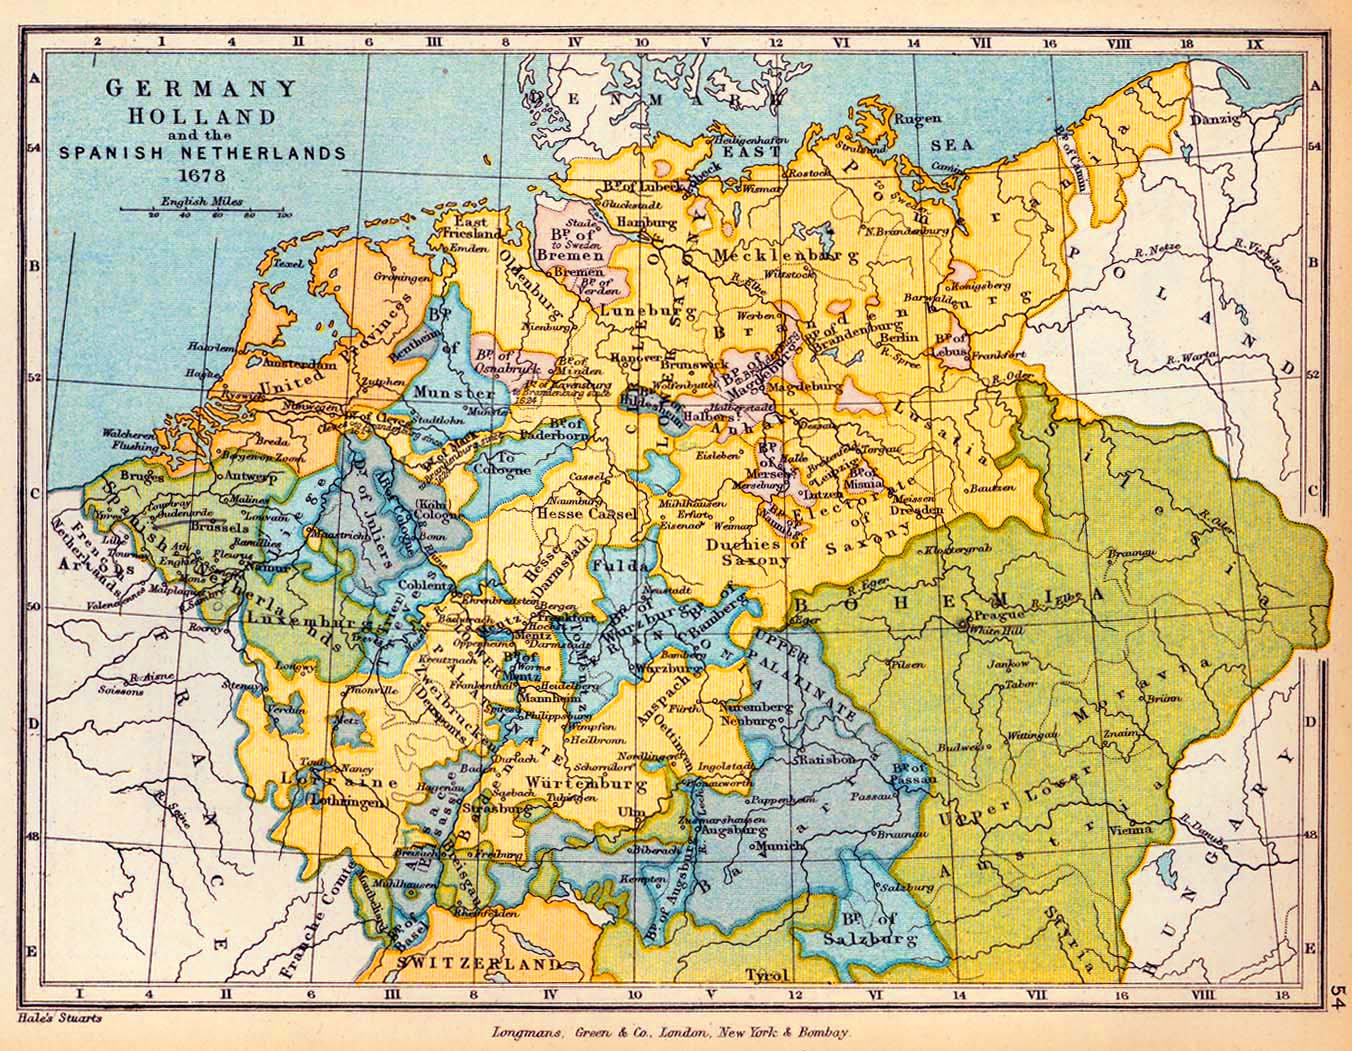 Map of central europe 1678 map of germany holland and the spanish netherlands 1678 gumiabroncs